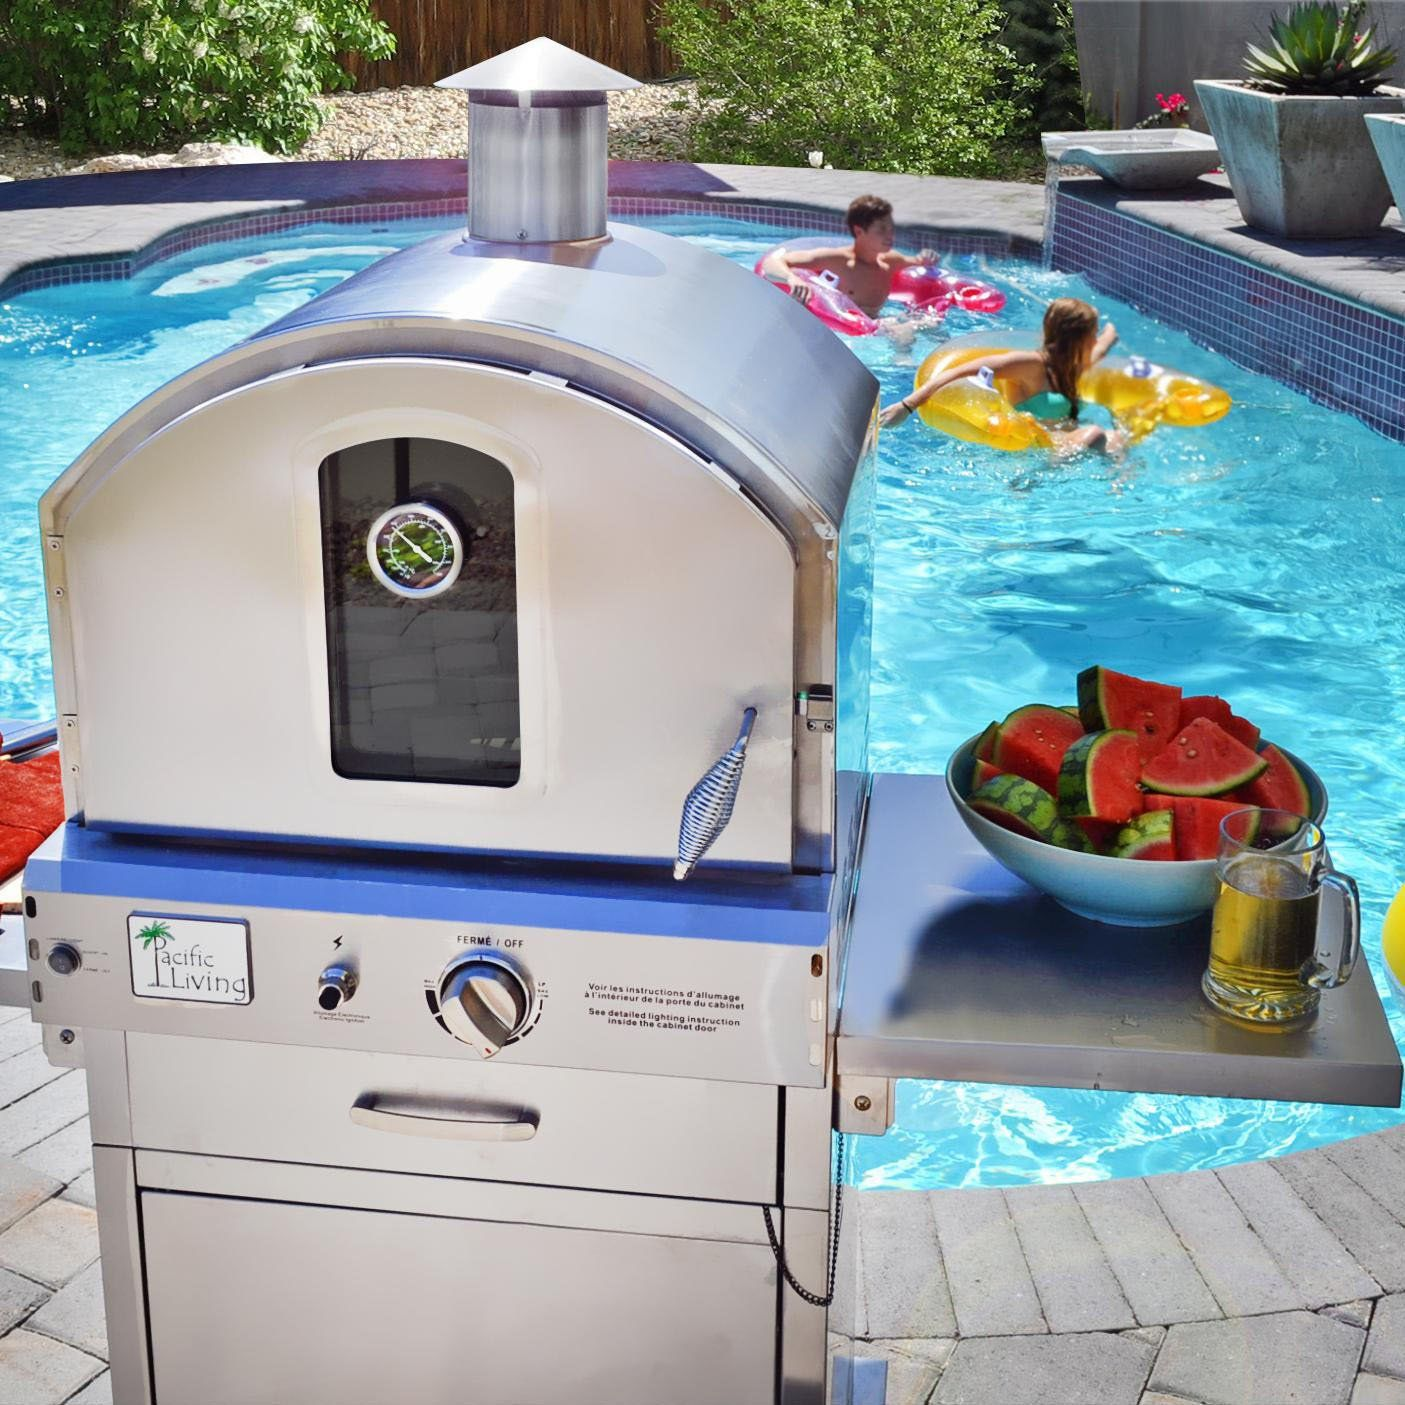 Fancy   Outdoor Pizza Oven Gas Grill By Pacific Living